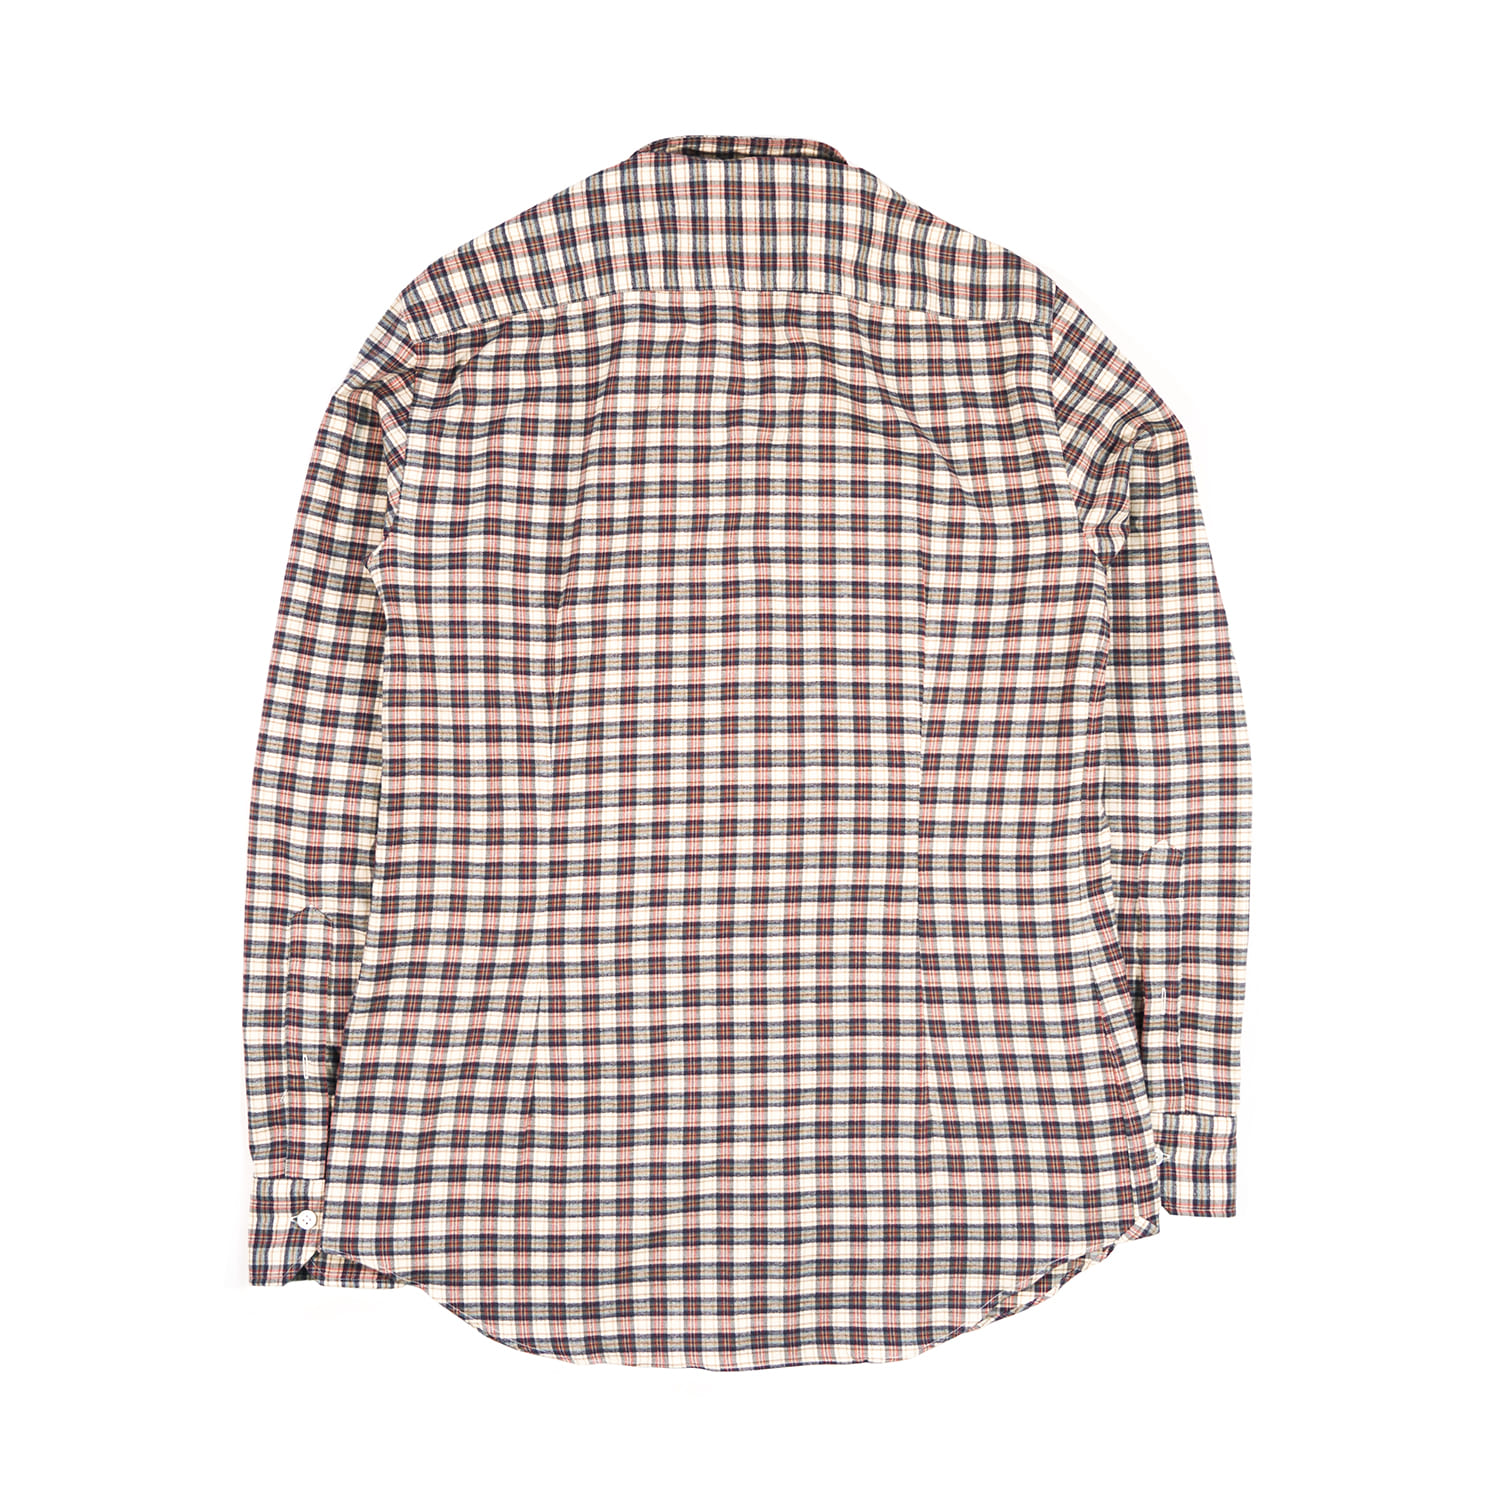 Classico Long Sleeves Plaid Shirt with Pence